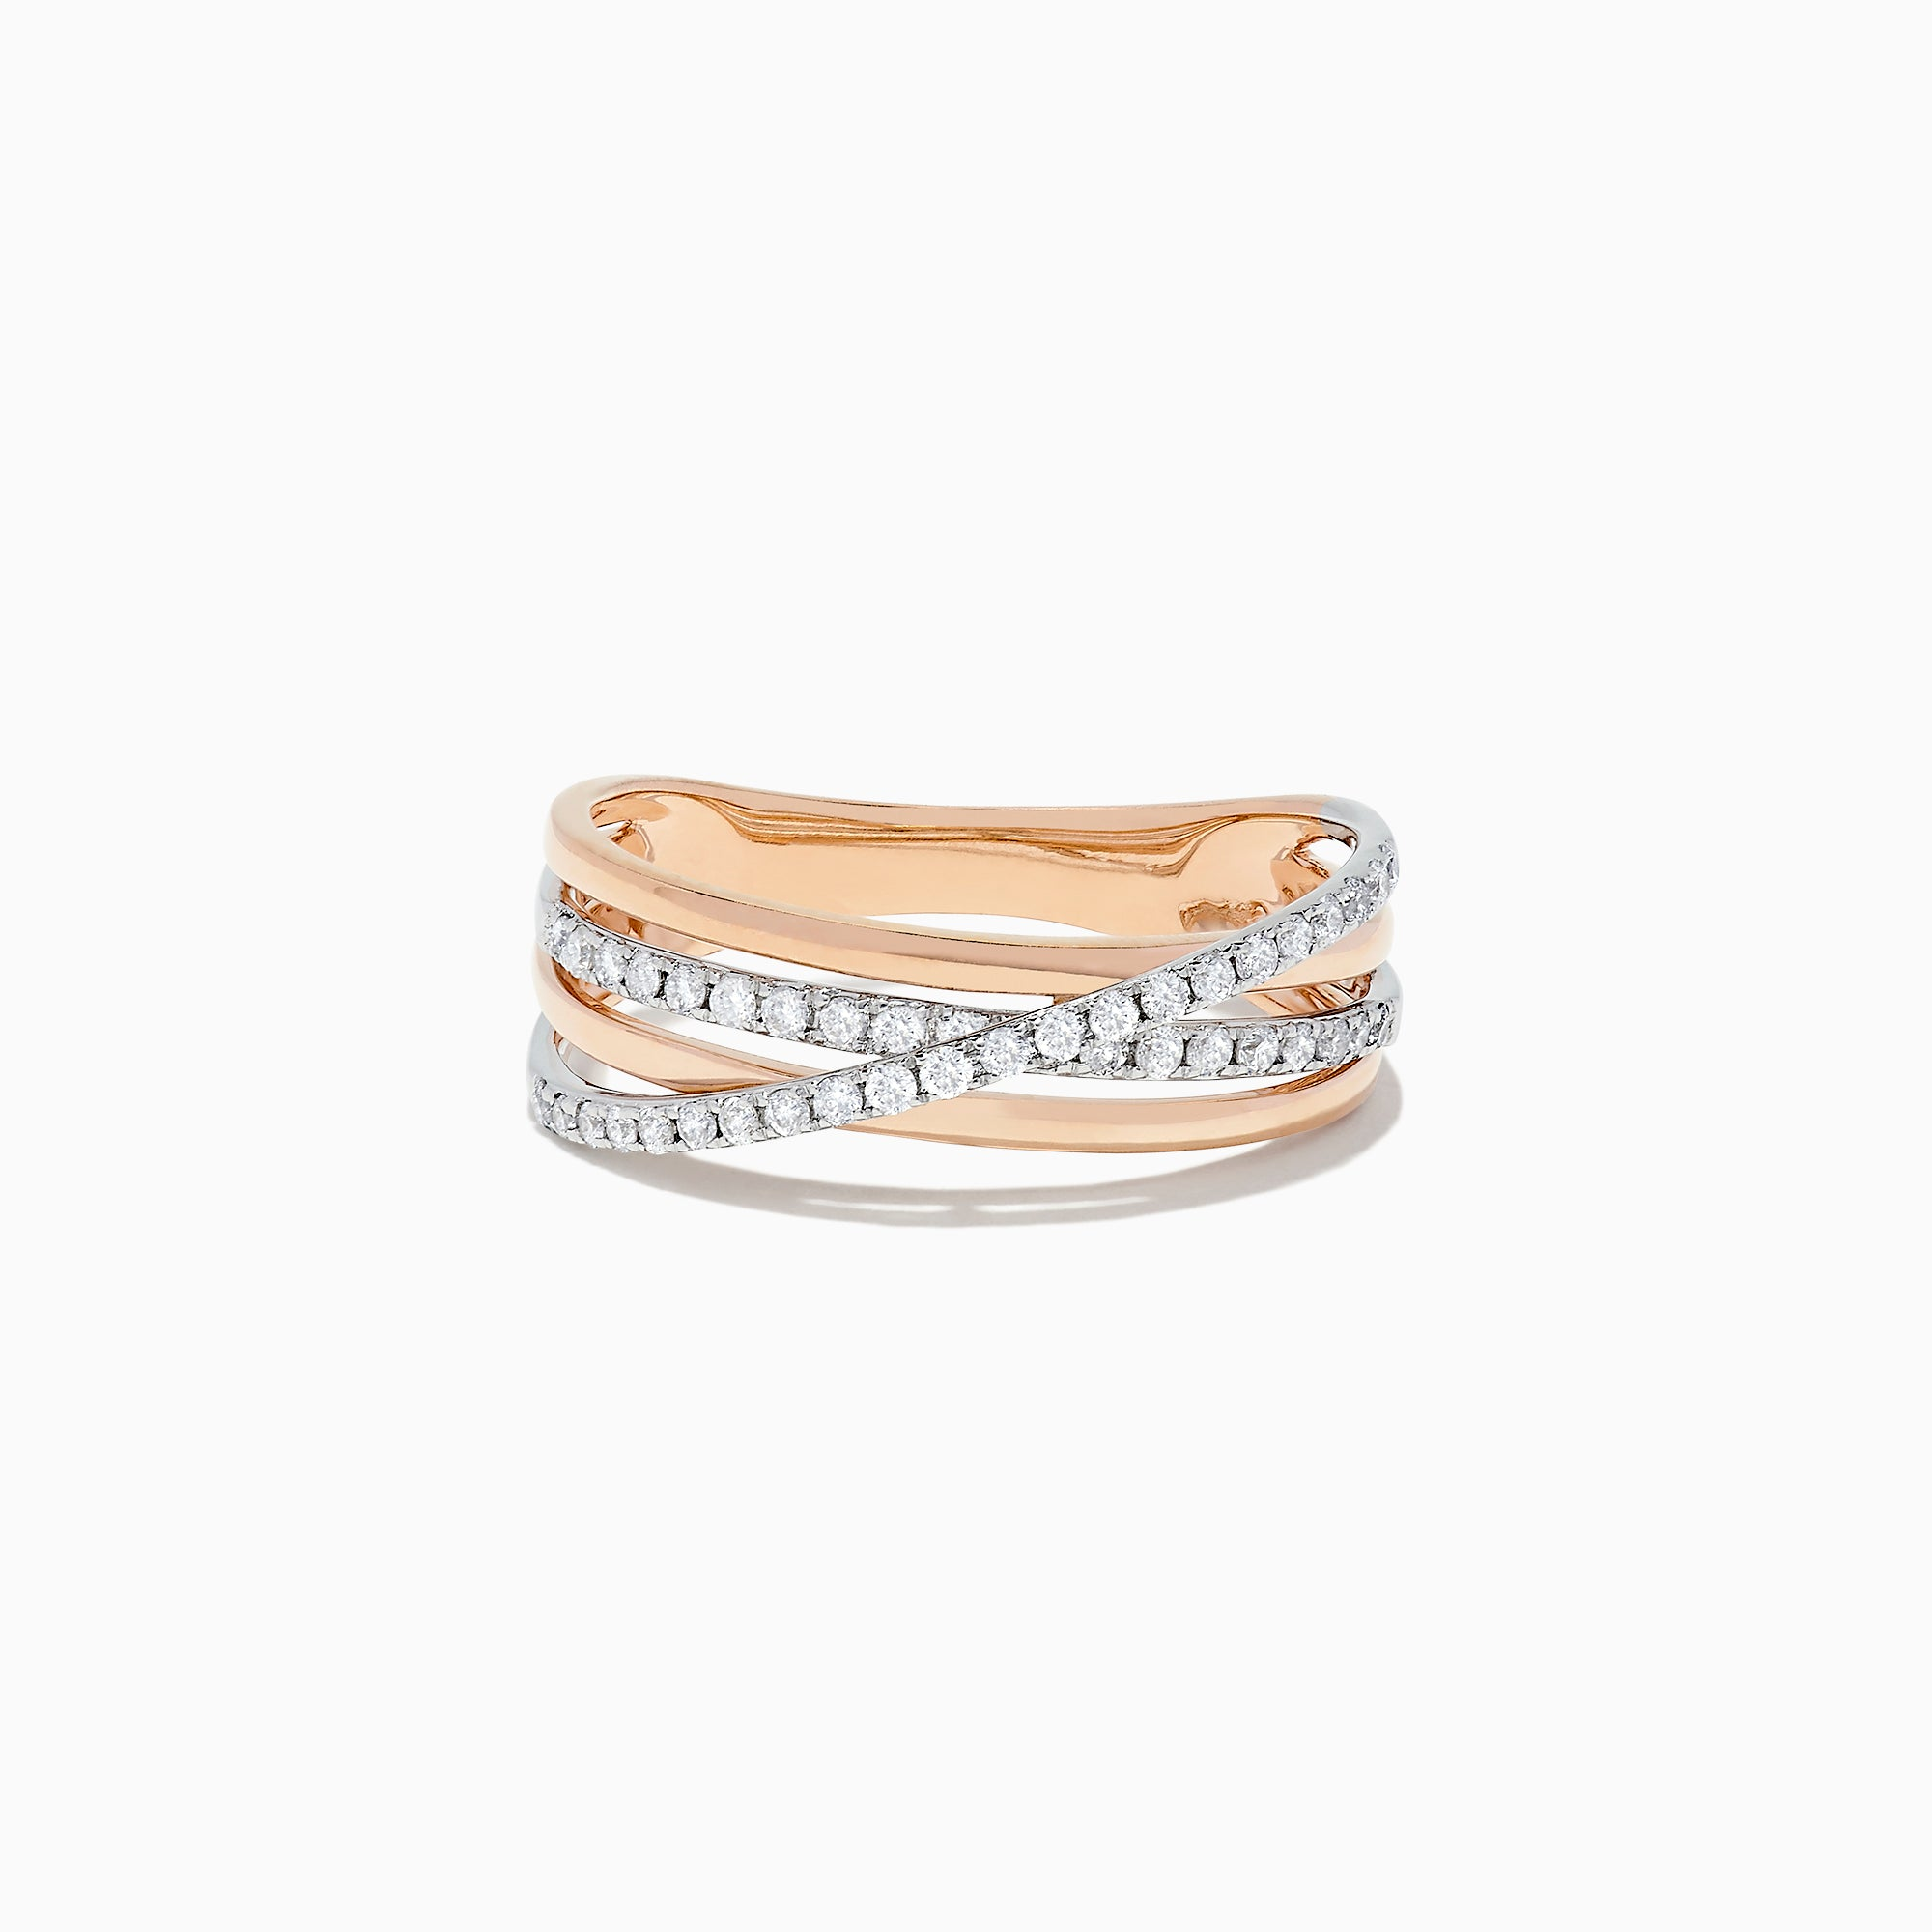 Effy Duo 14K Rose and White Gold Diamond Crossover Ring, 0.29 TCW